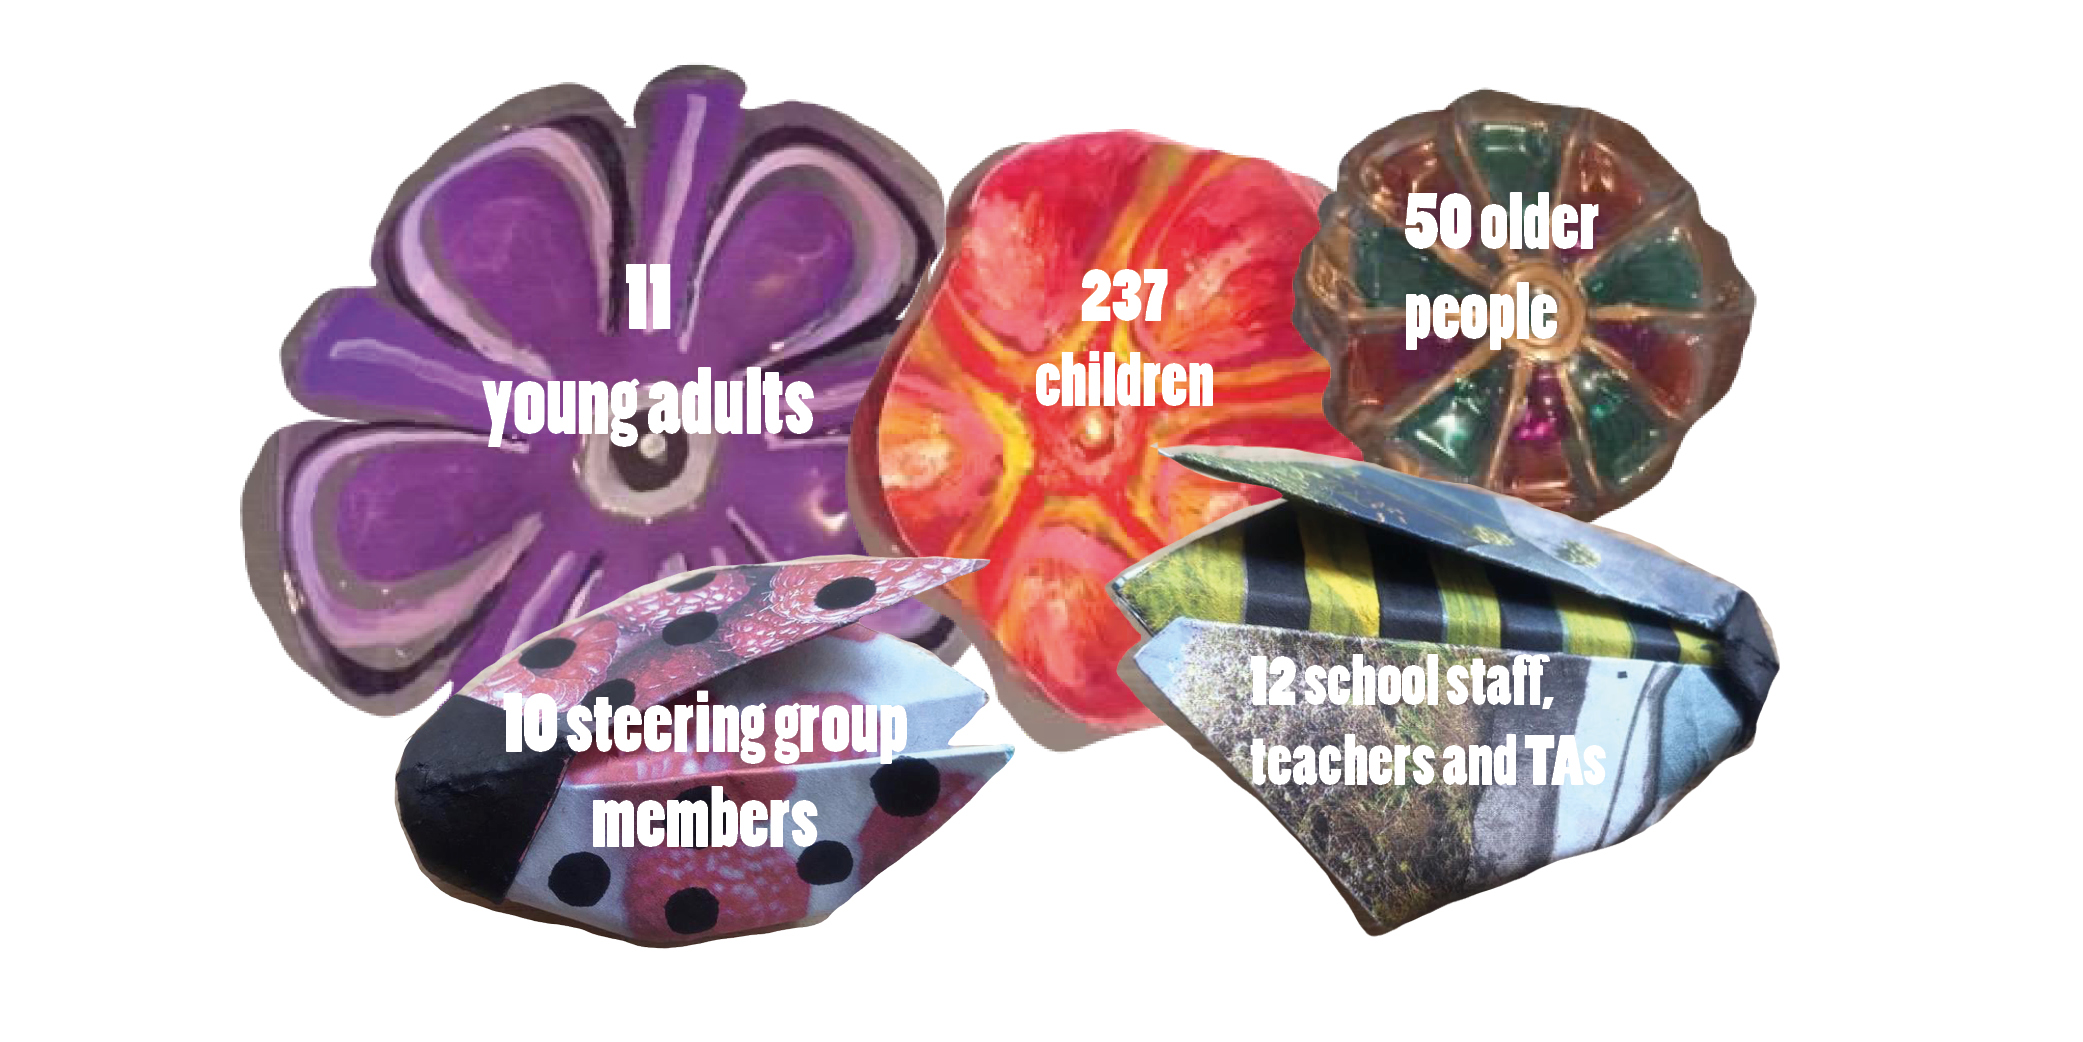 Graphic showing Quality Street numbers: 237 children 50 older people 11 young adults 12 school staff, teachers and TAs 10 steering group members